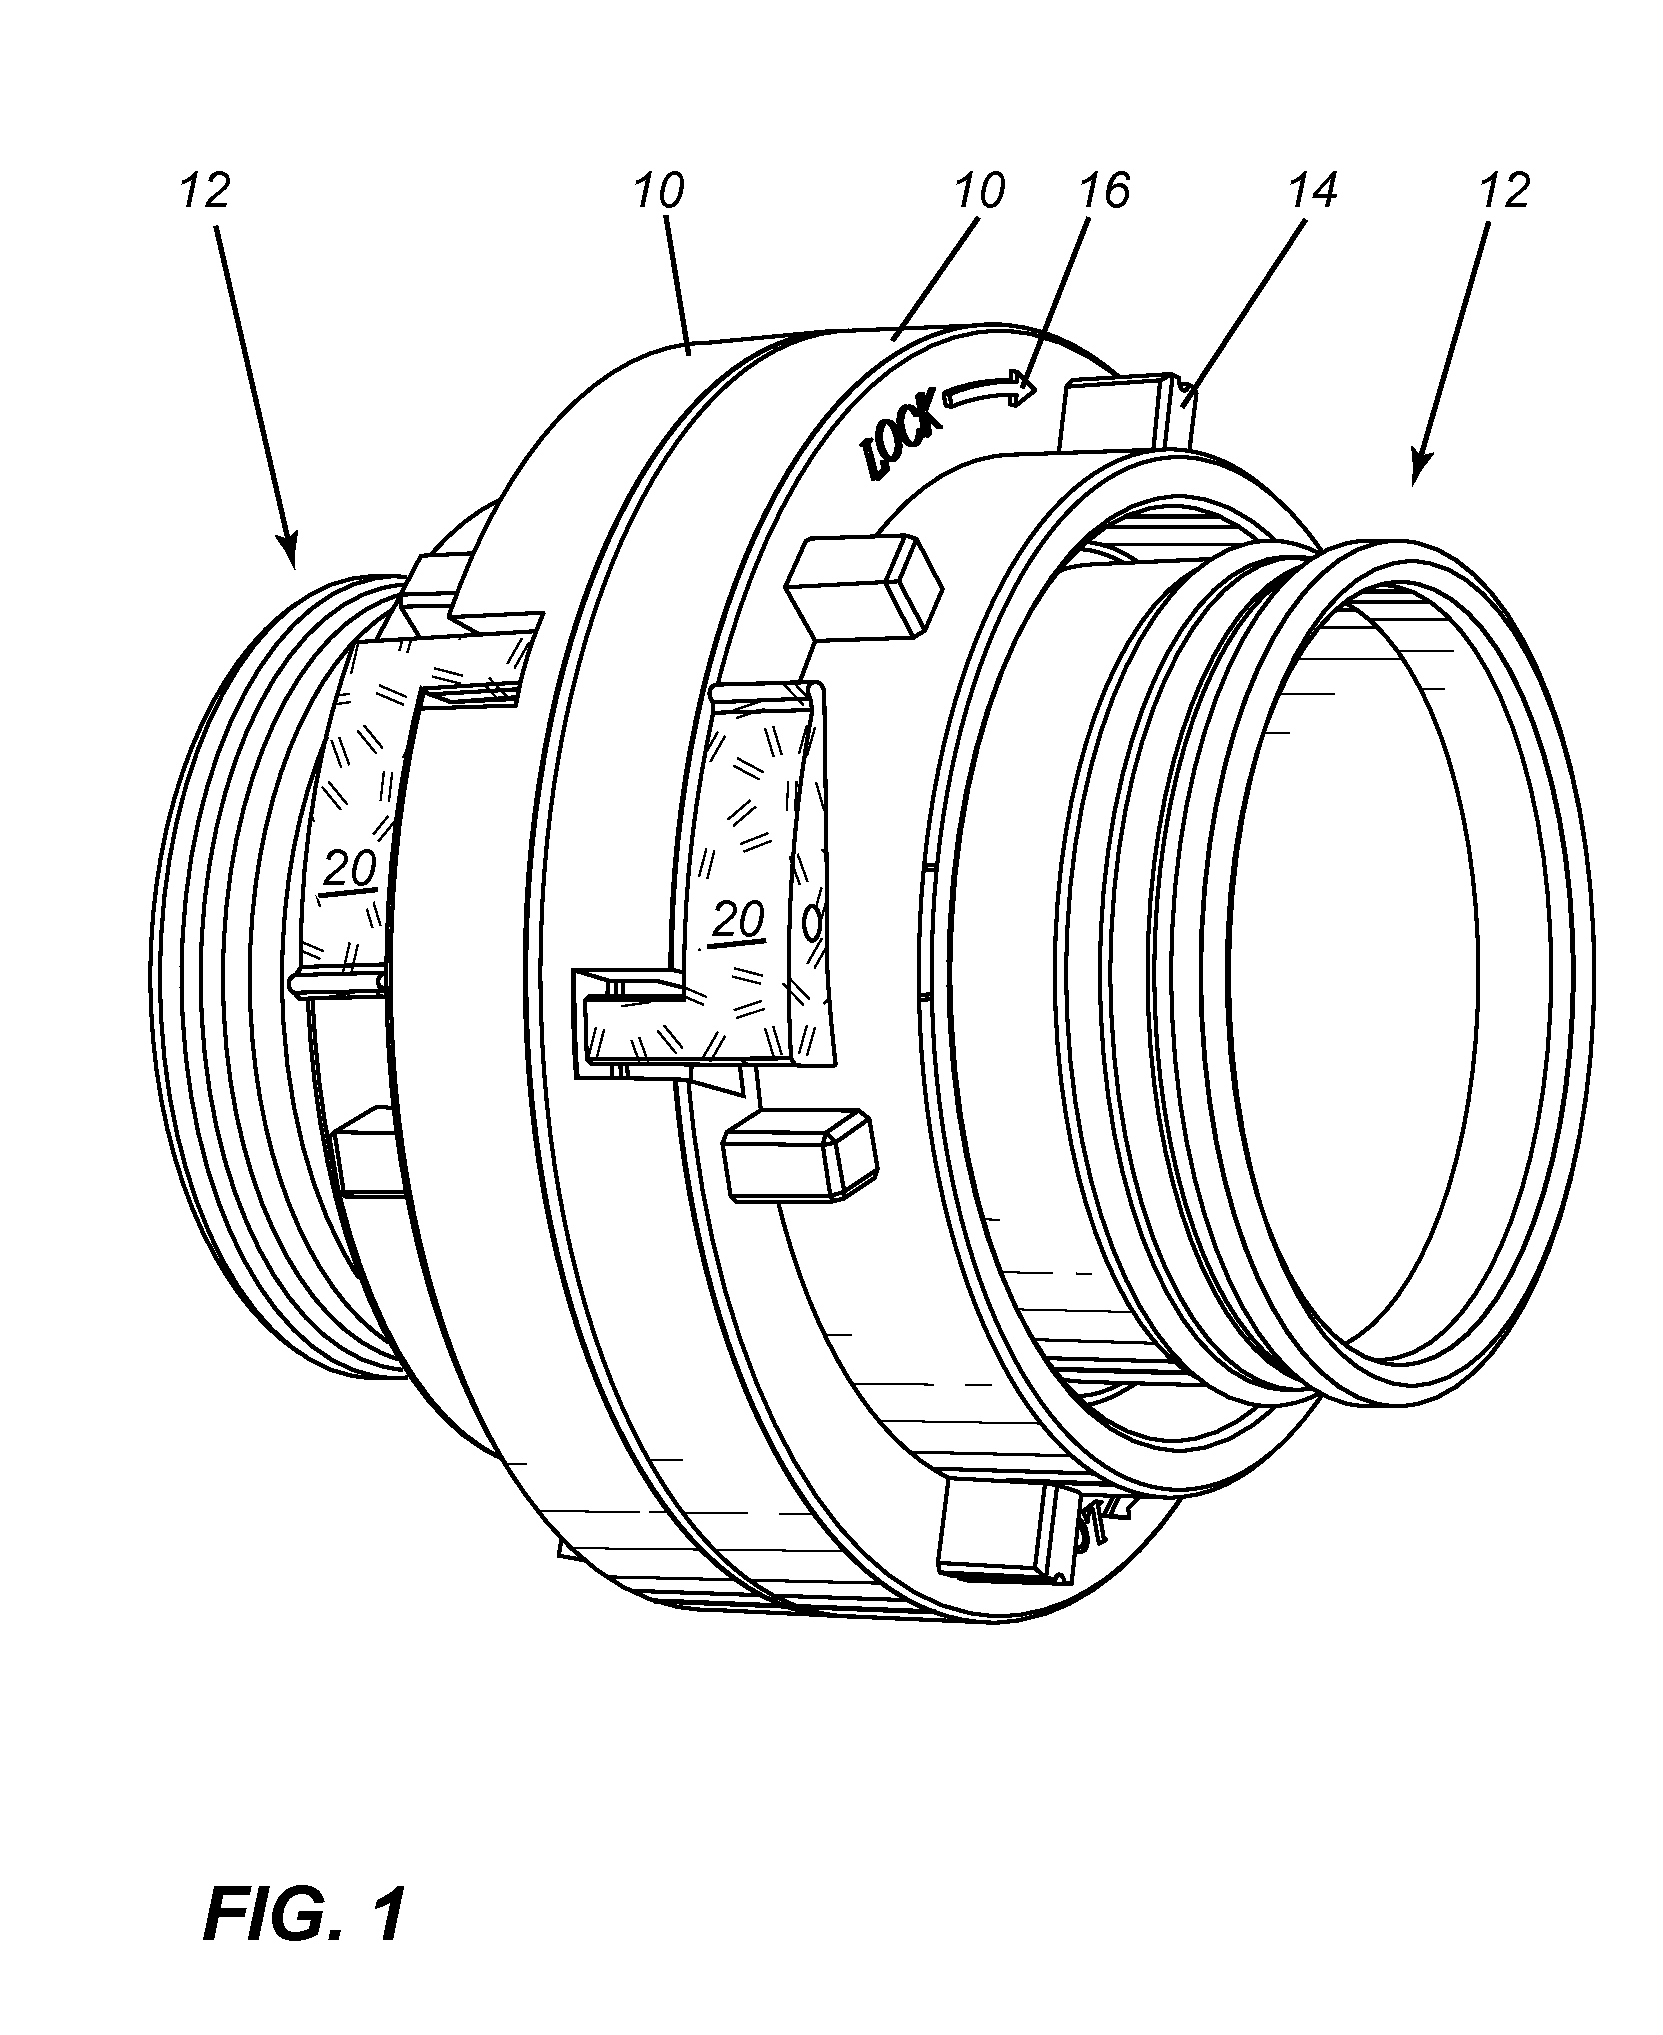 brevet us20130048133 high visibility locking levers for fire hose Grip Lock Coupling patent drawing